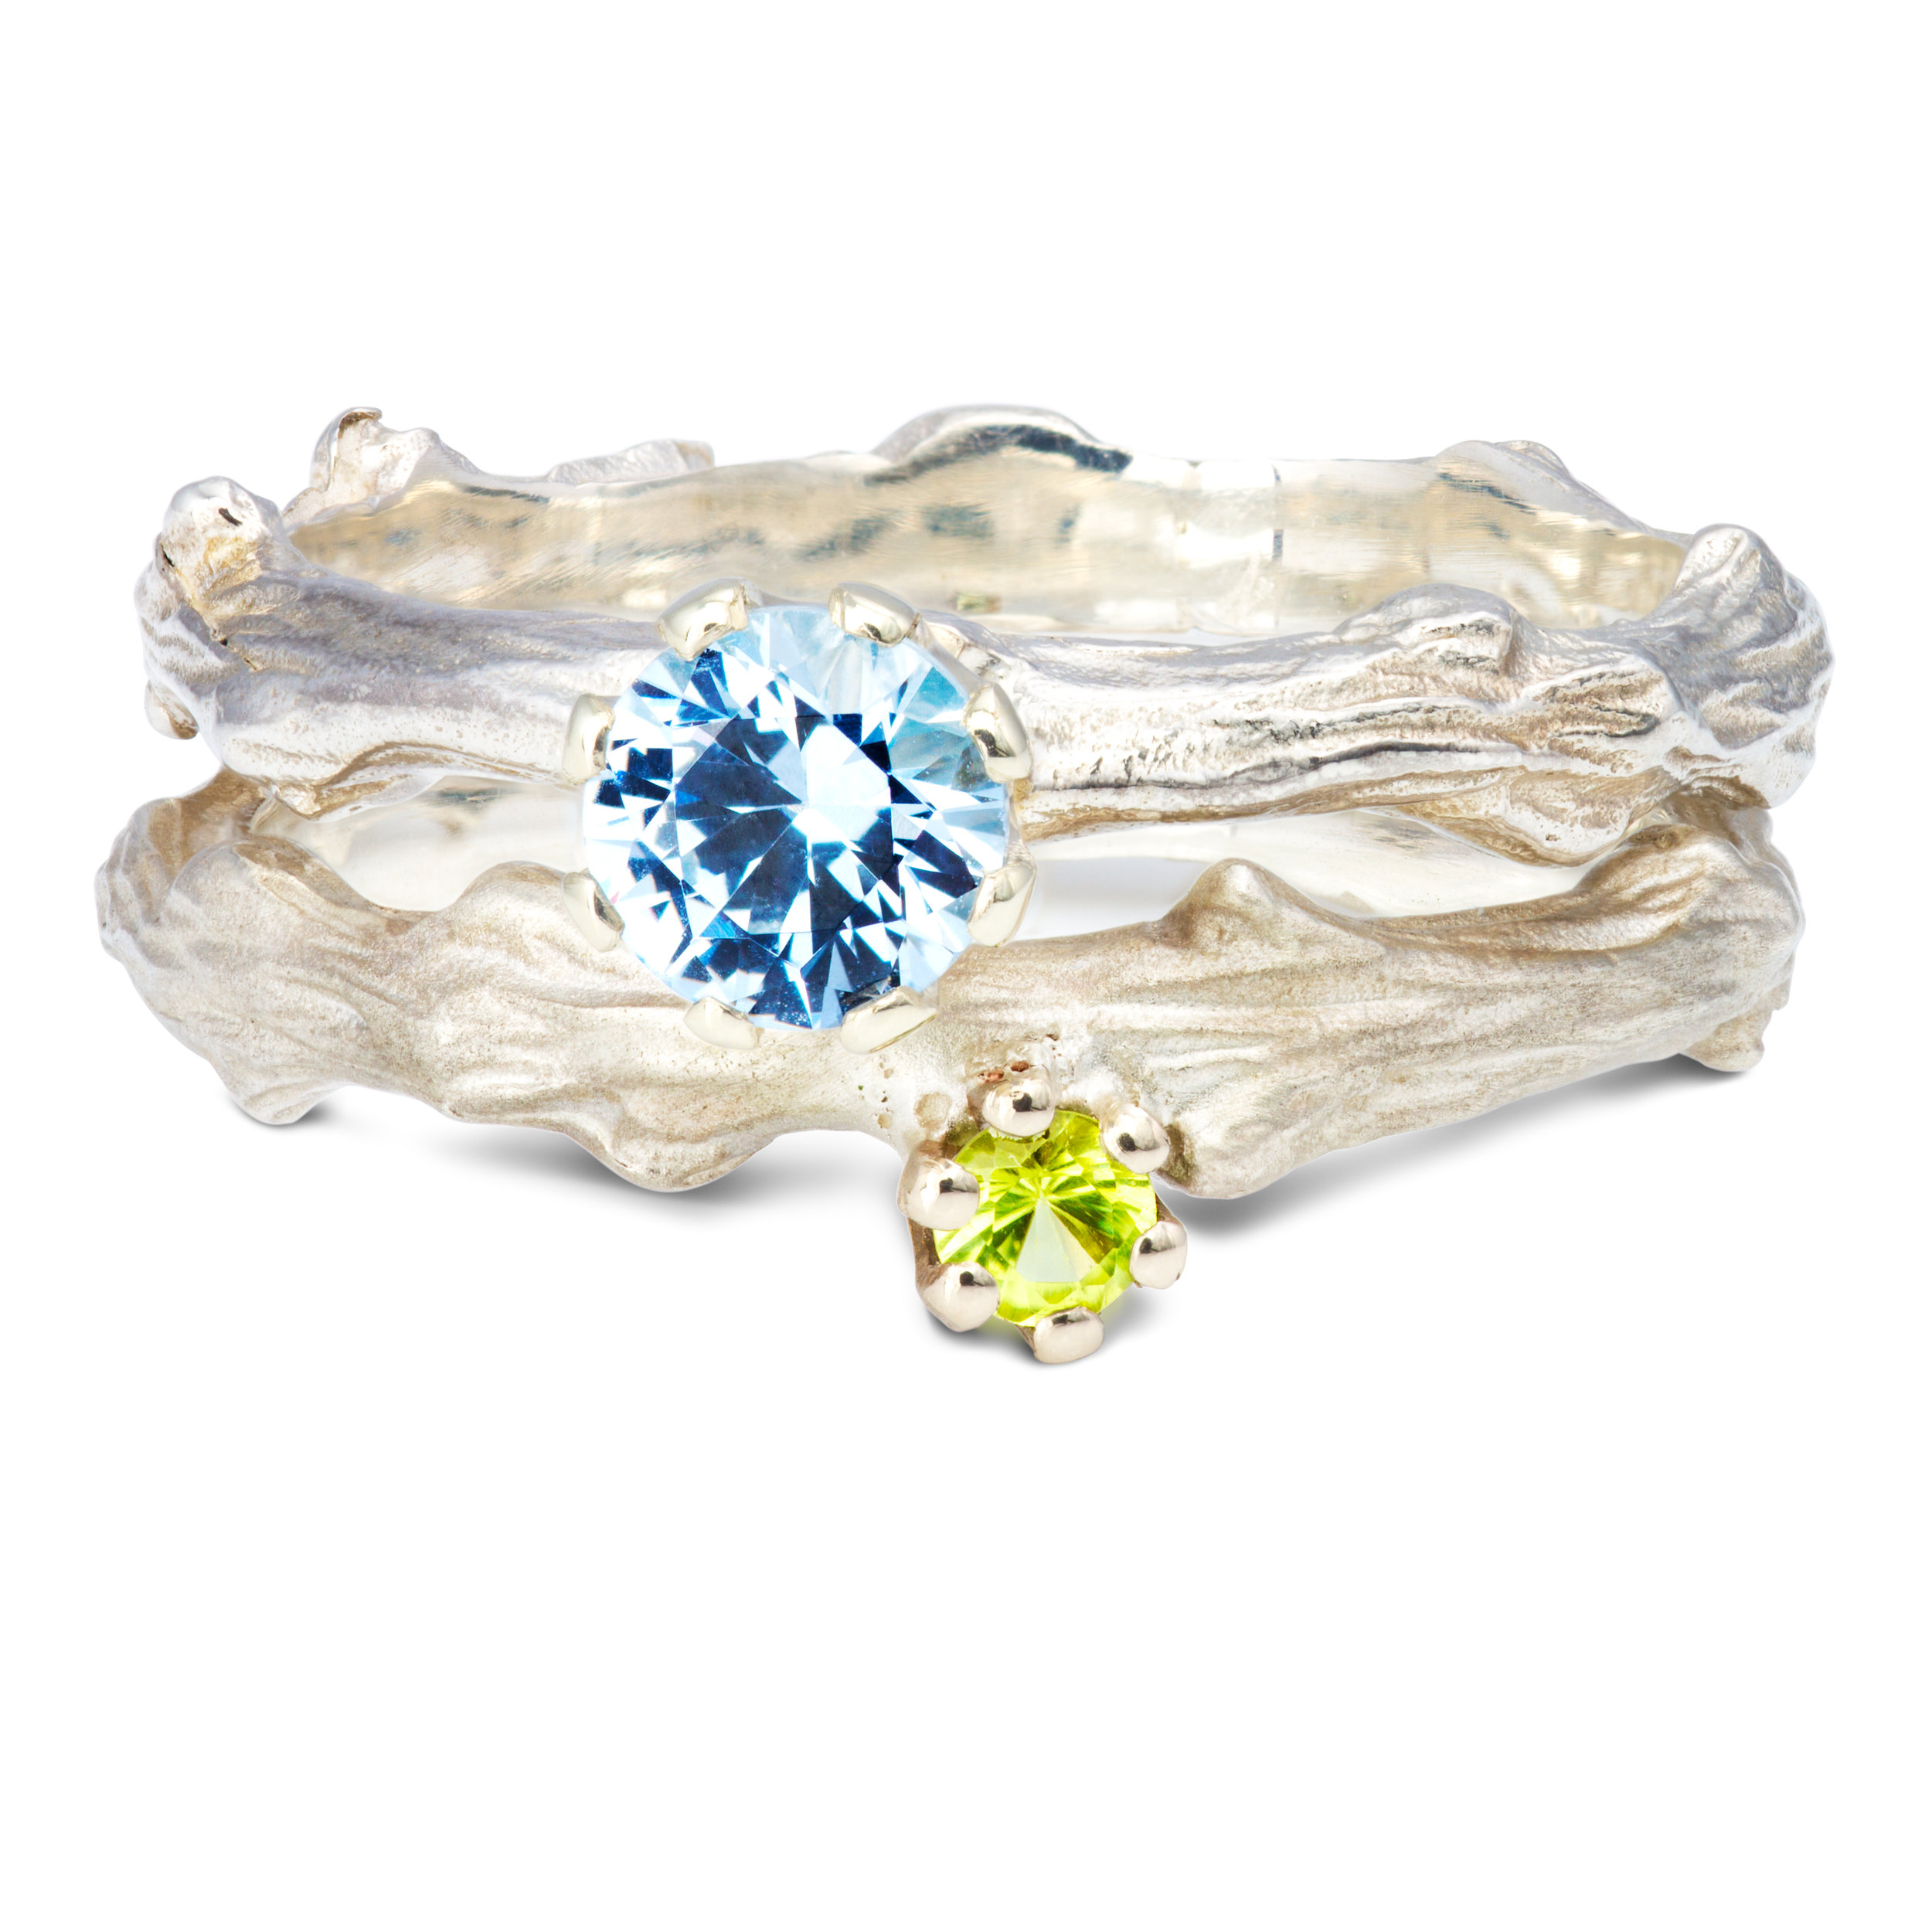 From the top: Silver & peridot ring - £235 Silver & lab-created blue spinel ring - £270